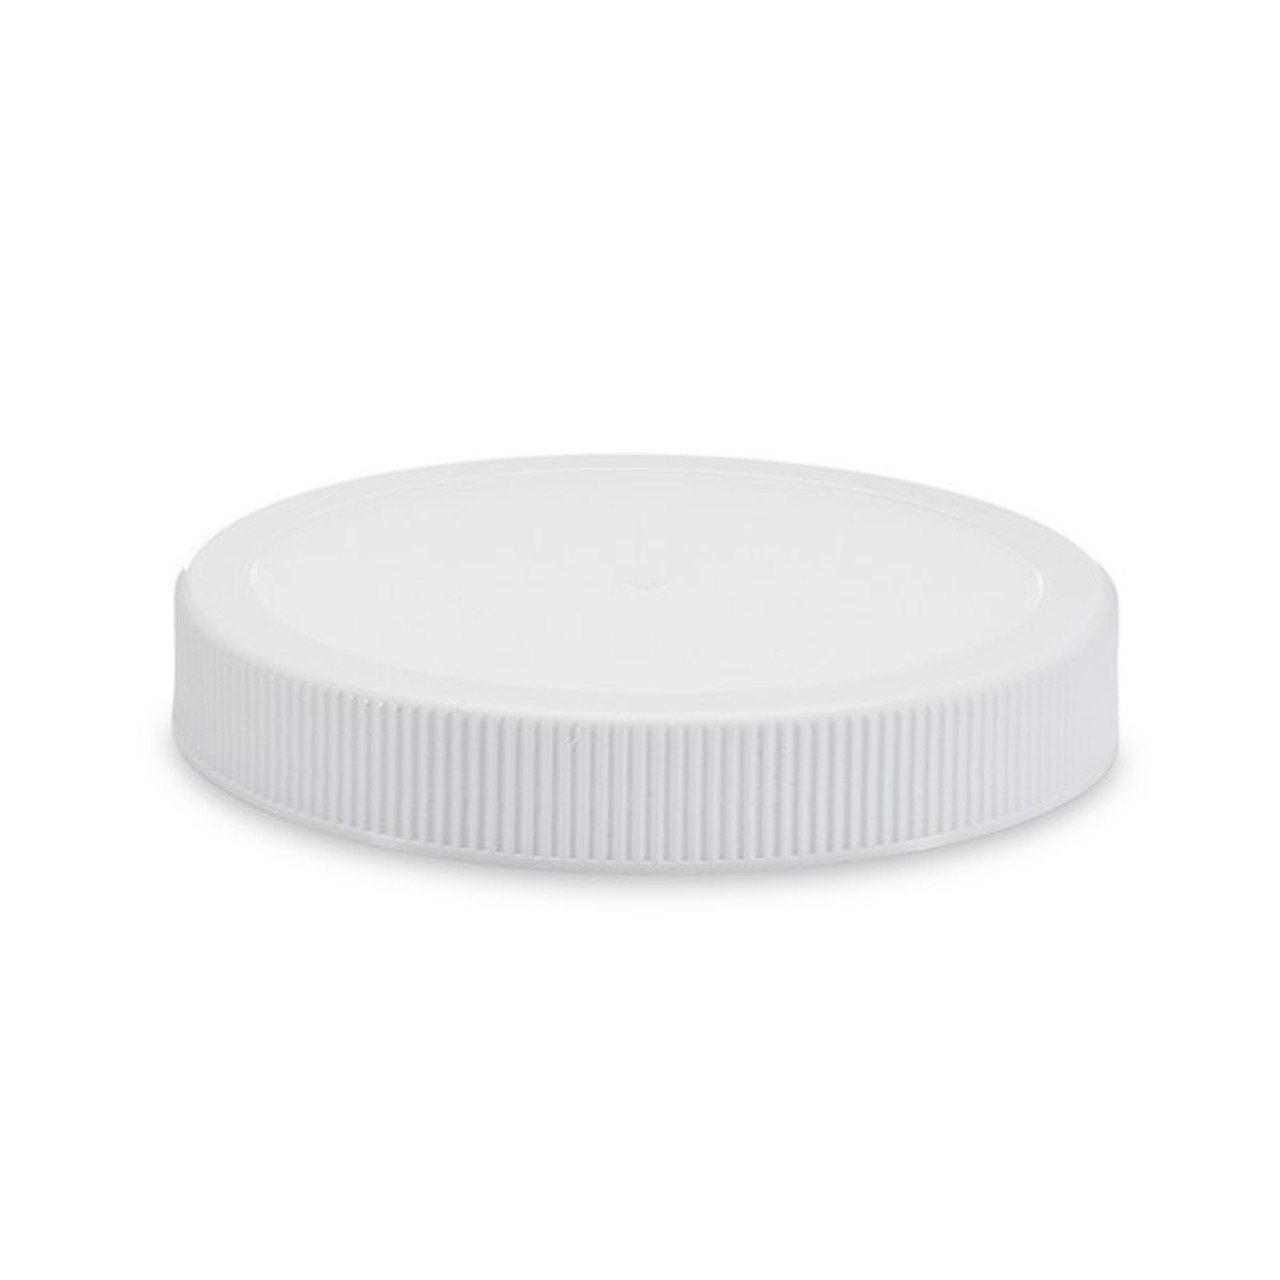 3 oz White HDPE Wide Mouth Packer Bottles   Berlin Packaging